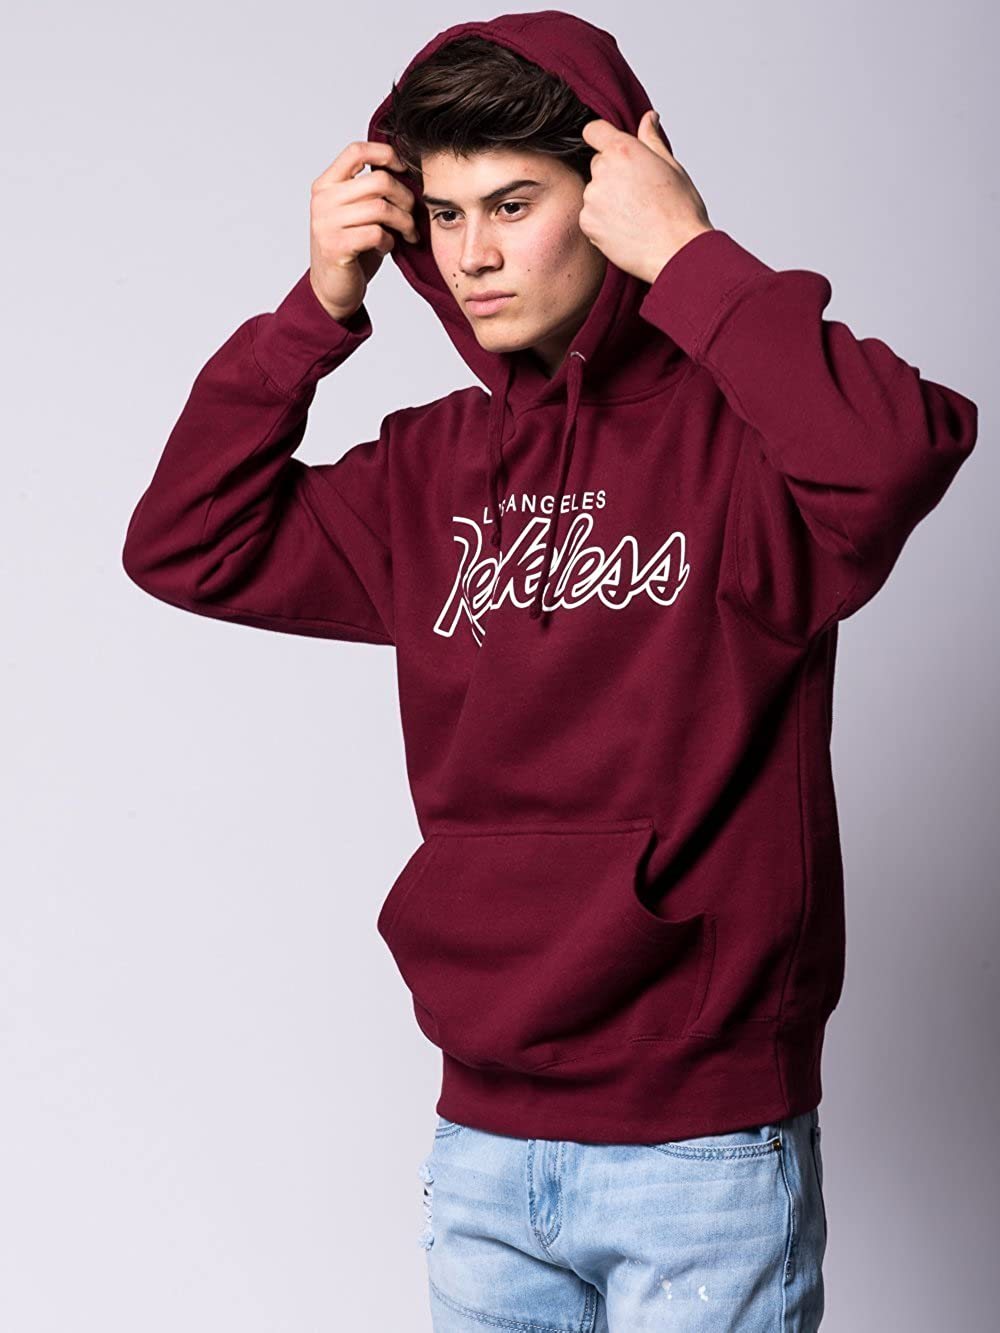 Amazon.com: Young and Reckless - OG Reckless Hoodie - Burgundy - - Mens - Tops - Hoodies -: Clothing